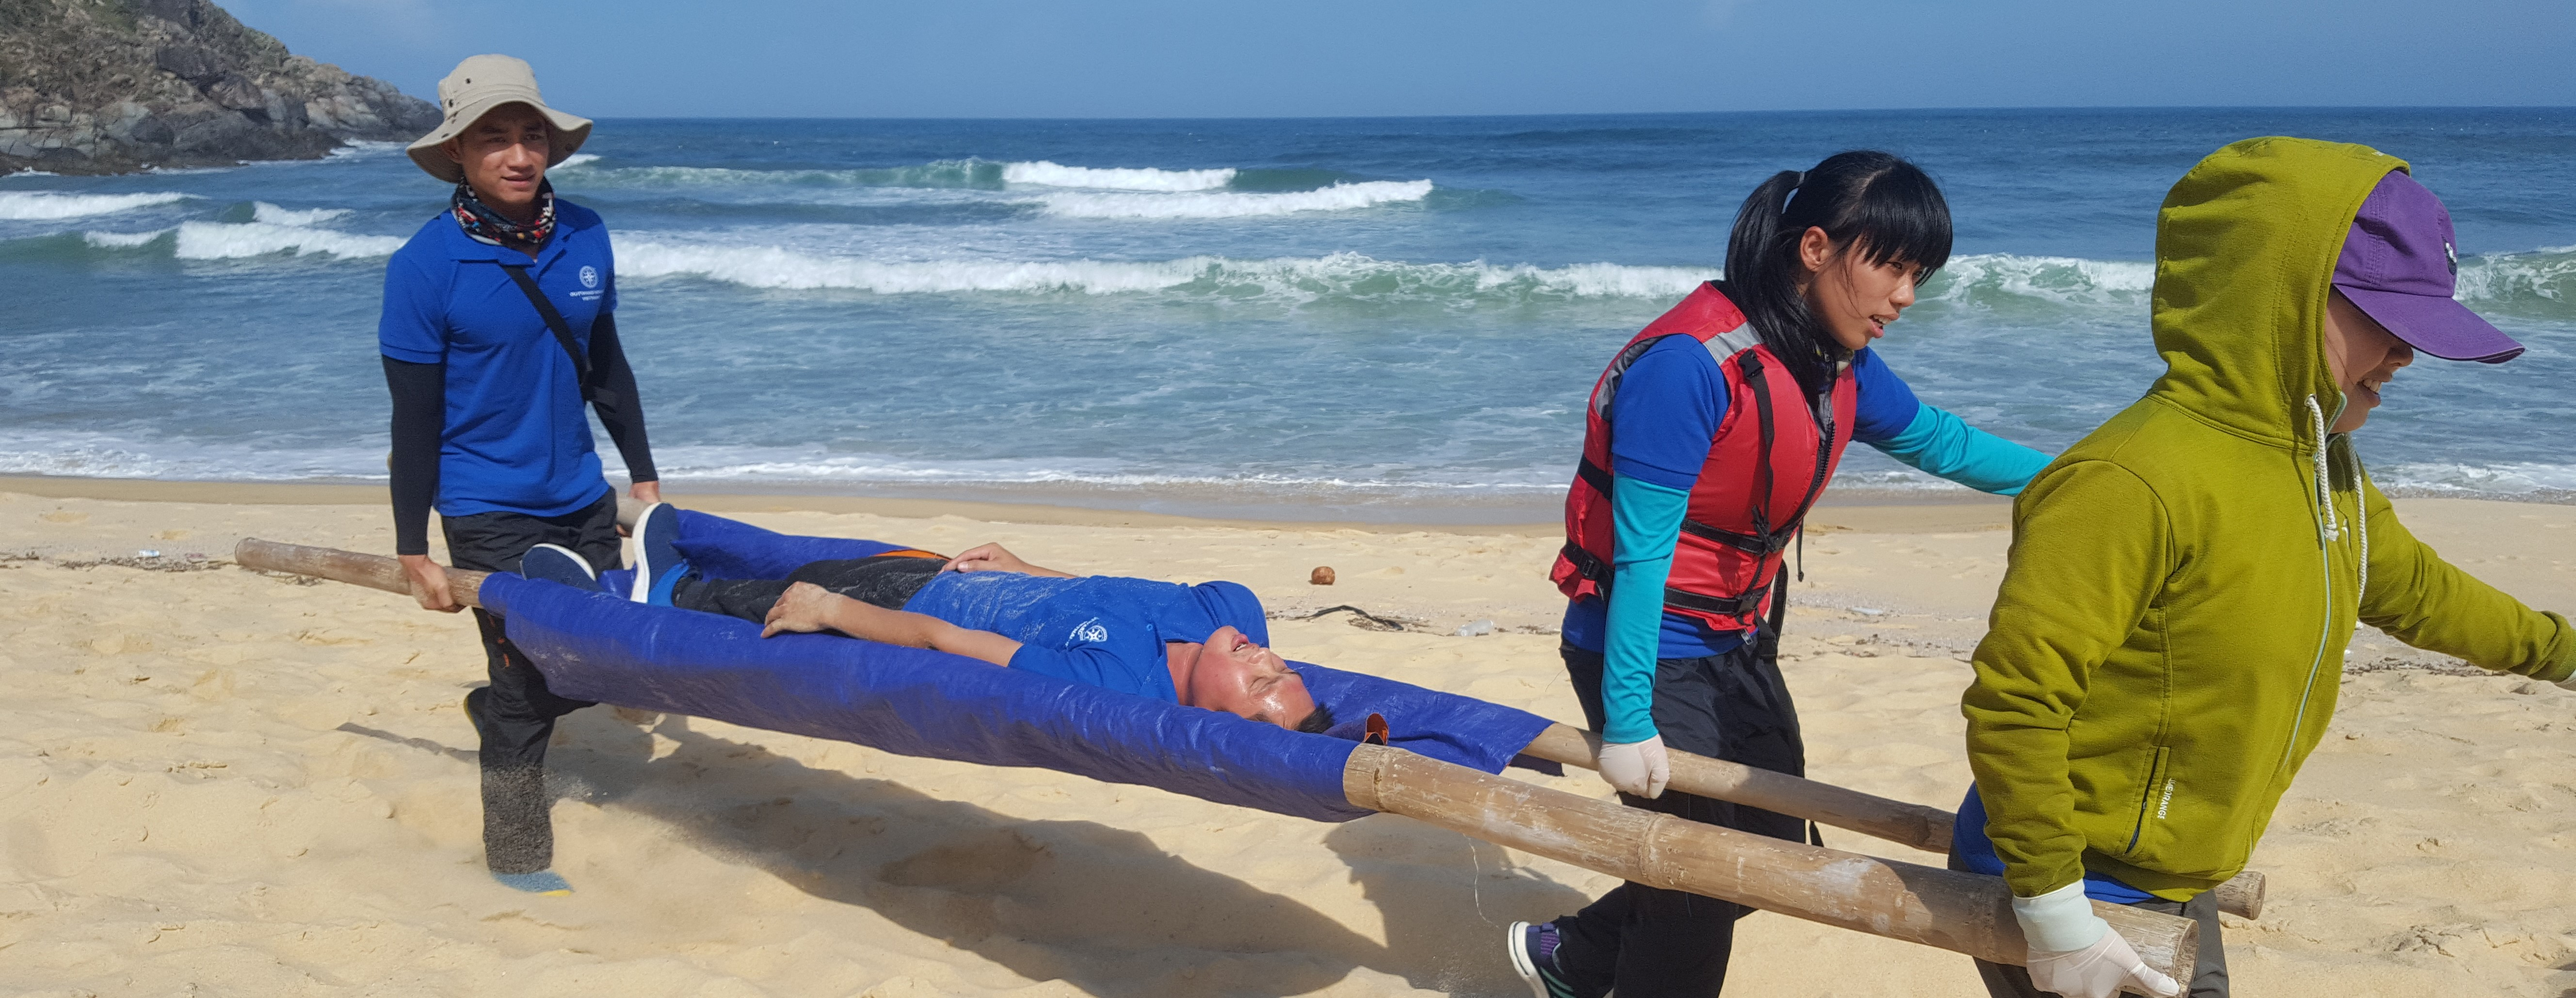 Students evacuate patient from beach